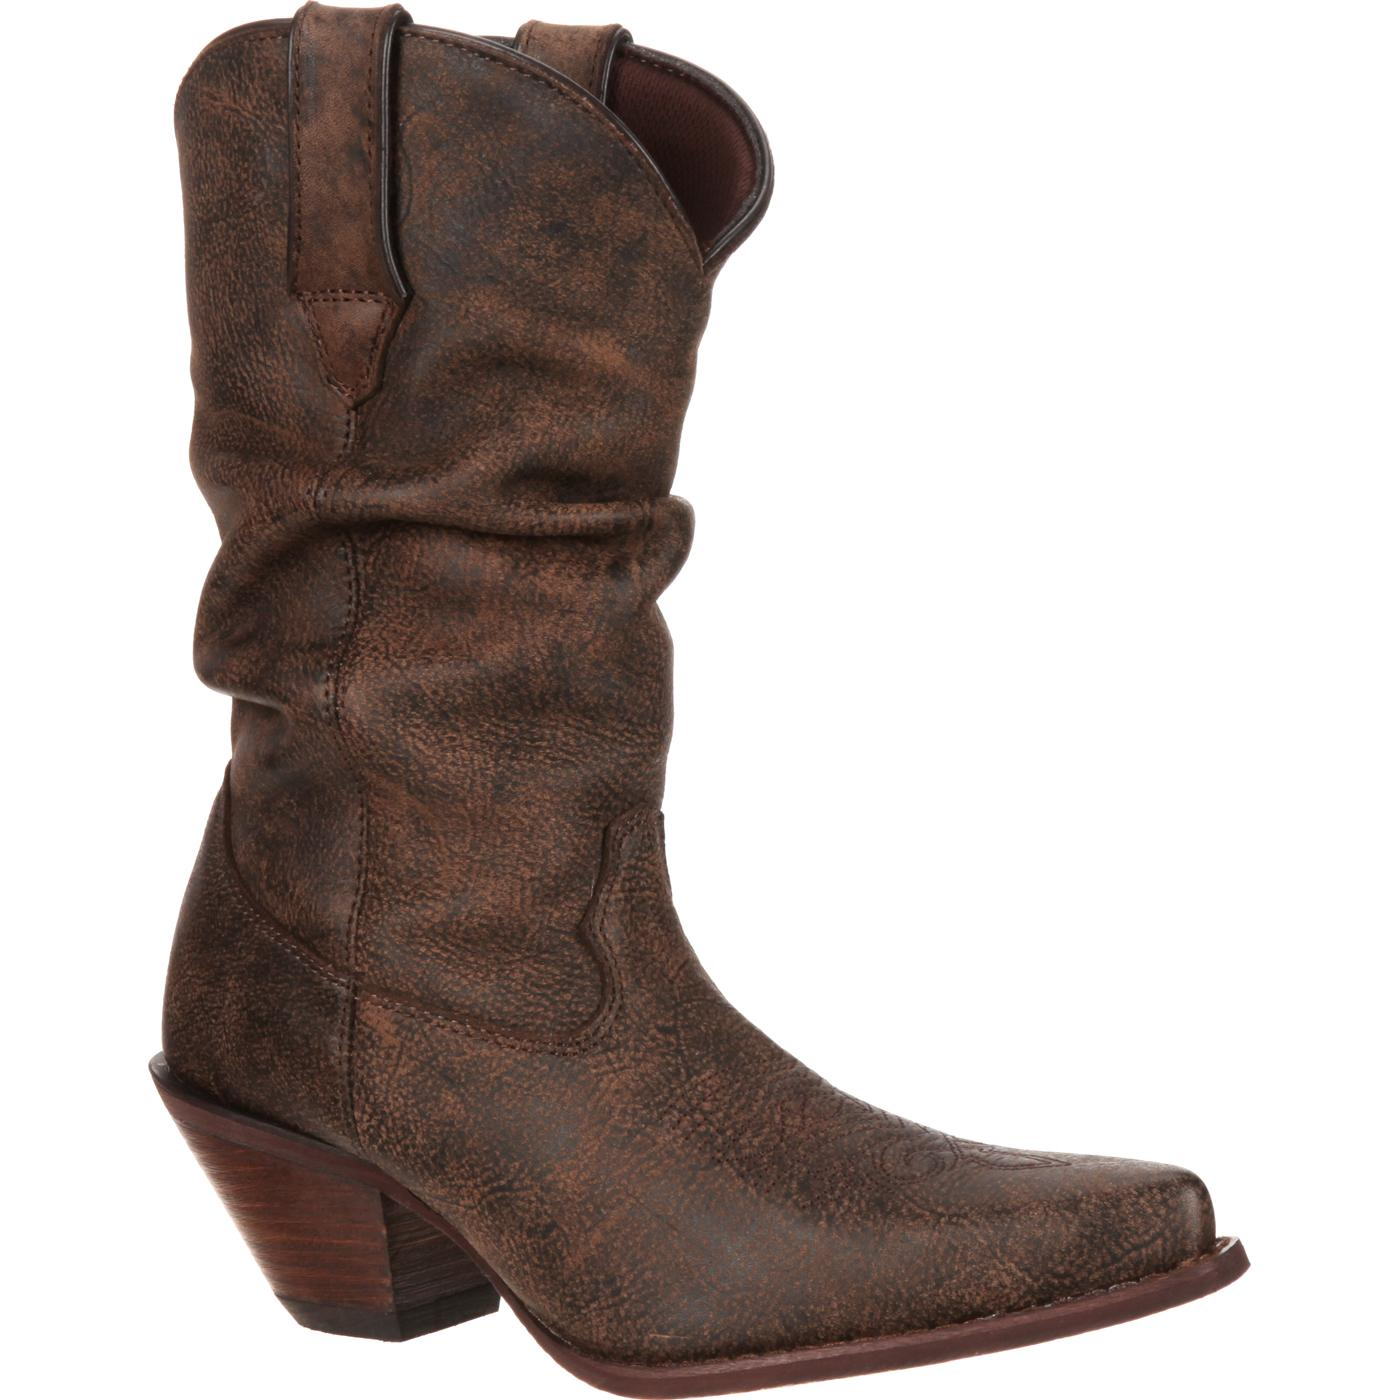 8c00e7eab912 Crush by Durango: Women's Brown Leather Slouch Western Boot